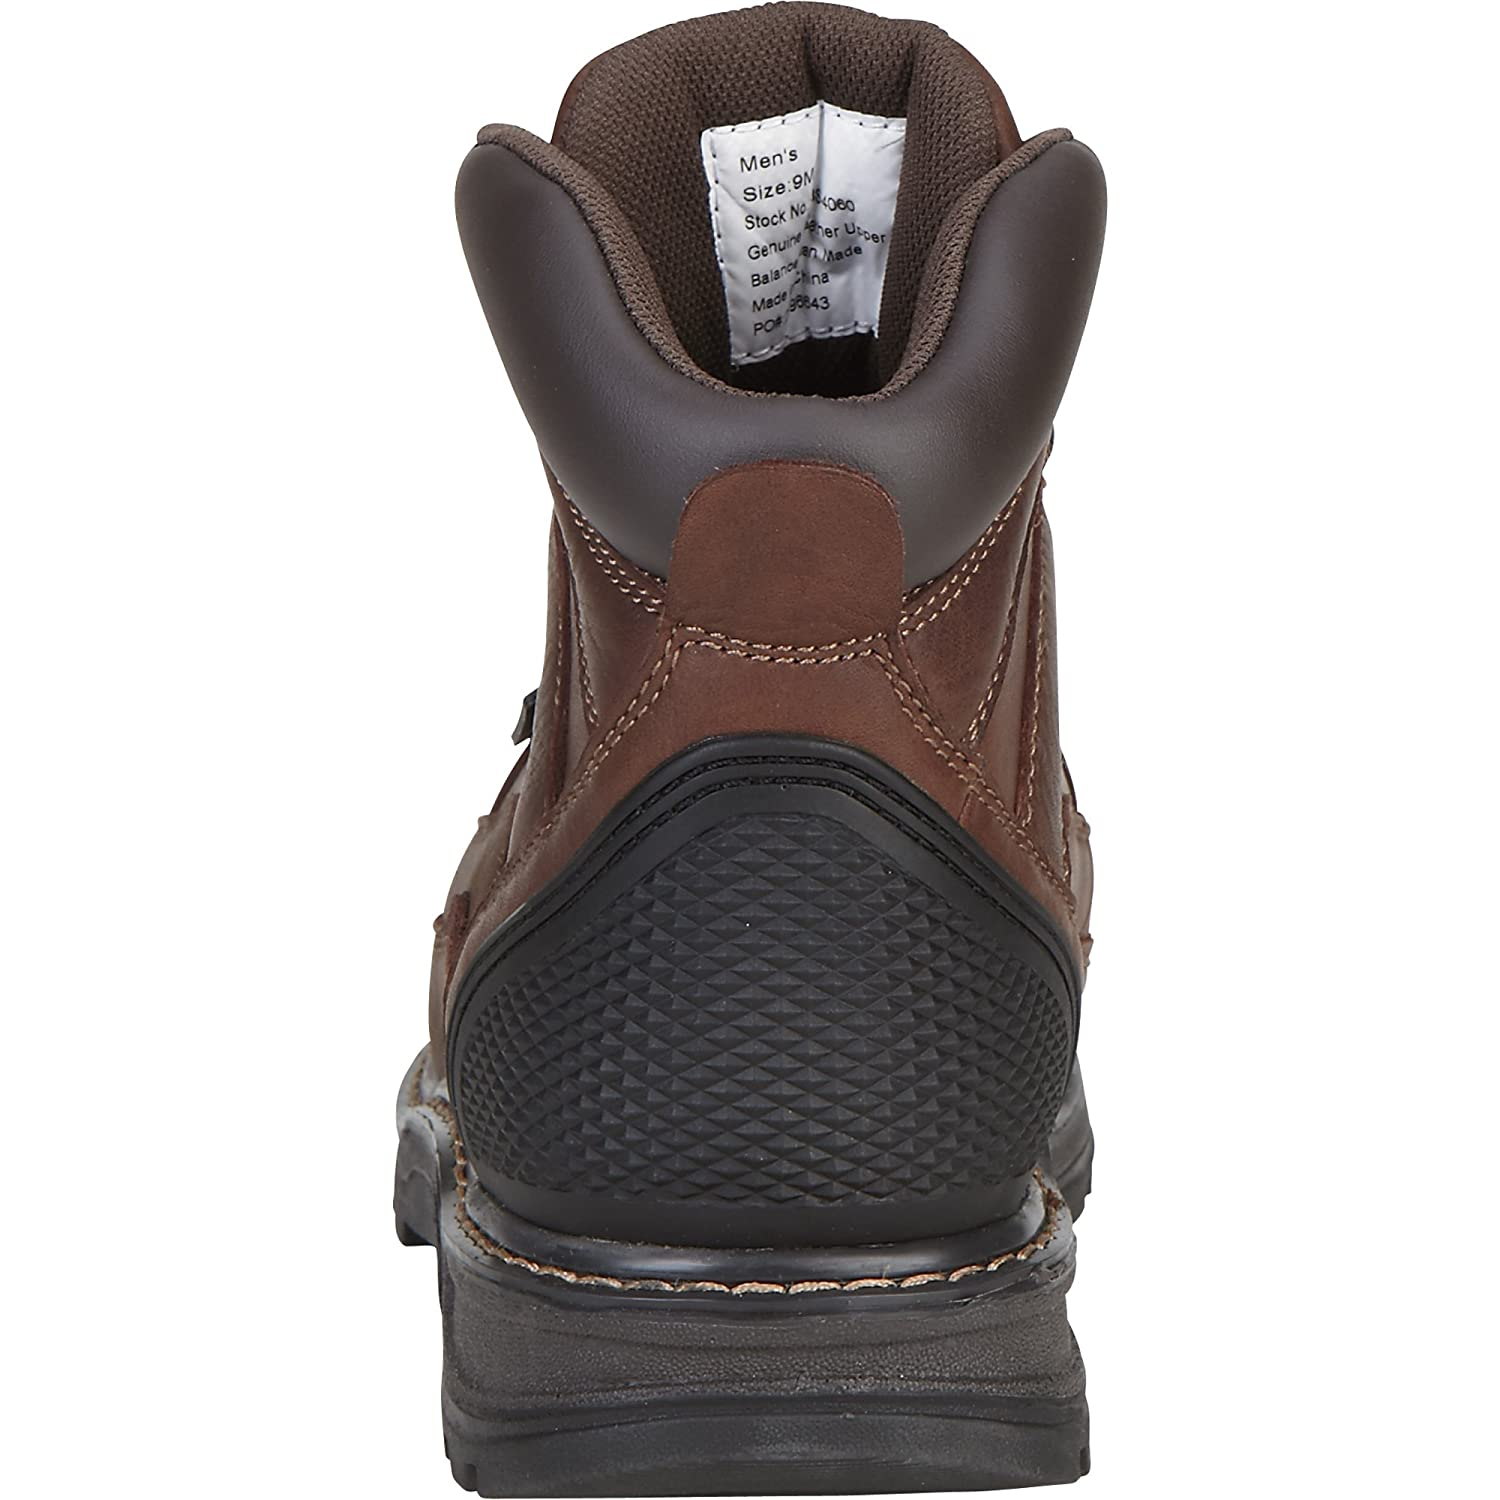 1d18ed64c19 Bingua.com - Amazon.com | Gravel Gear Waterproof 6in. Steel Toe Work ...